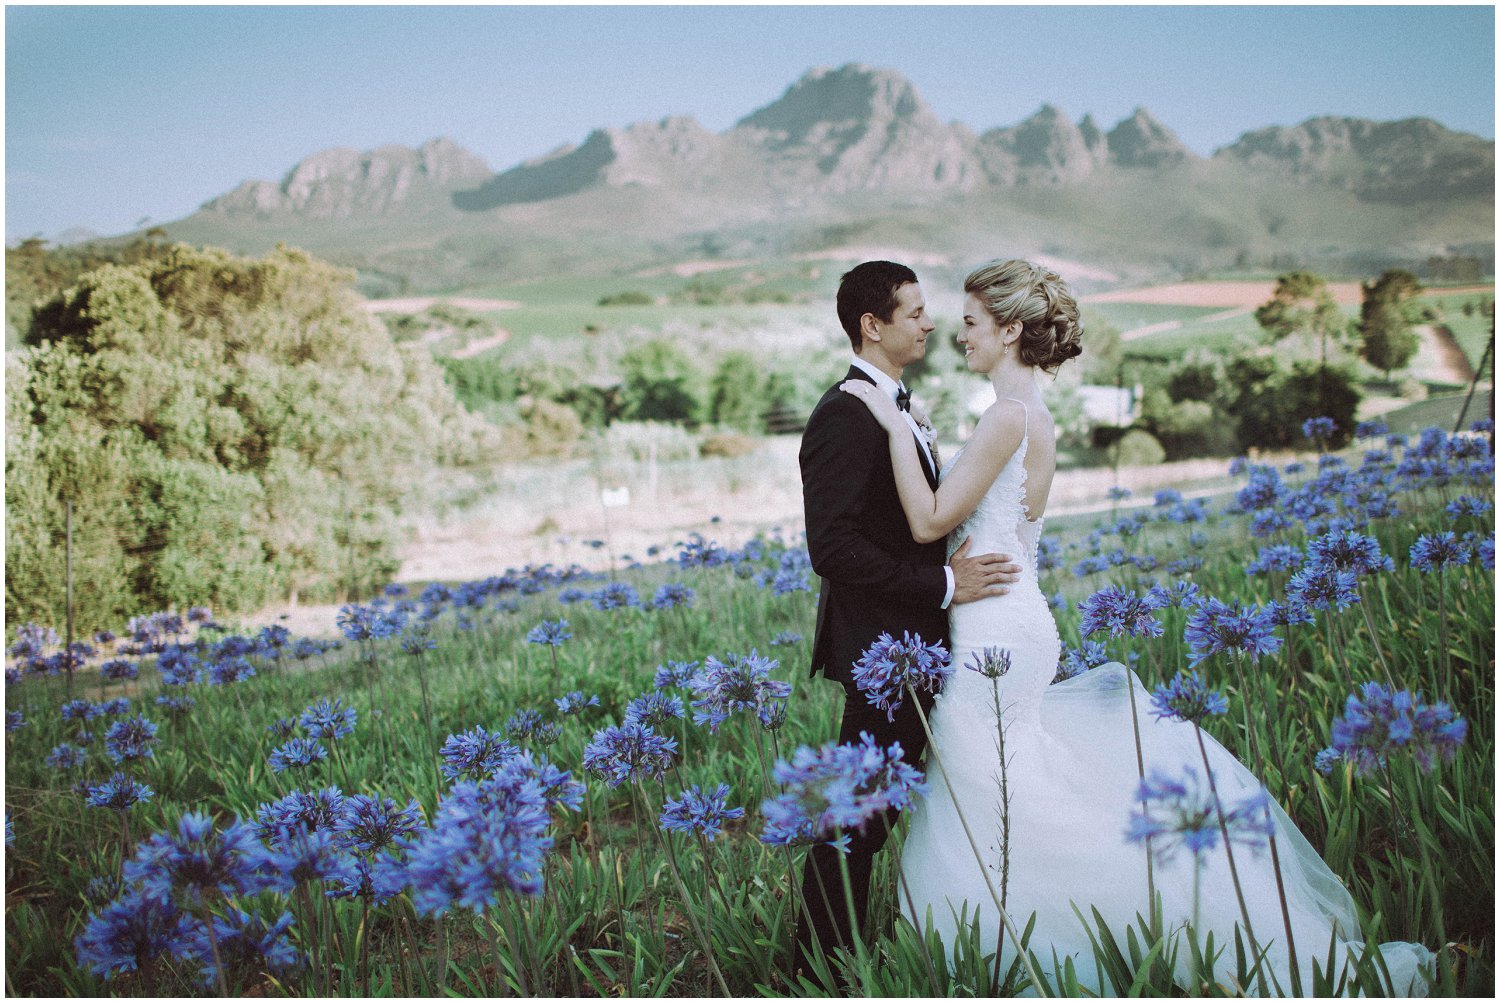 Top Artistic Creative Documentary Wedding Photographer Cape Town South Africa Rue Kruger_0142.jpg